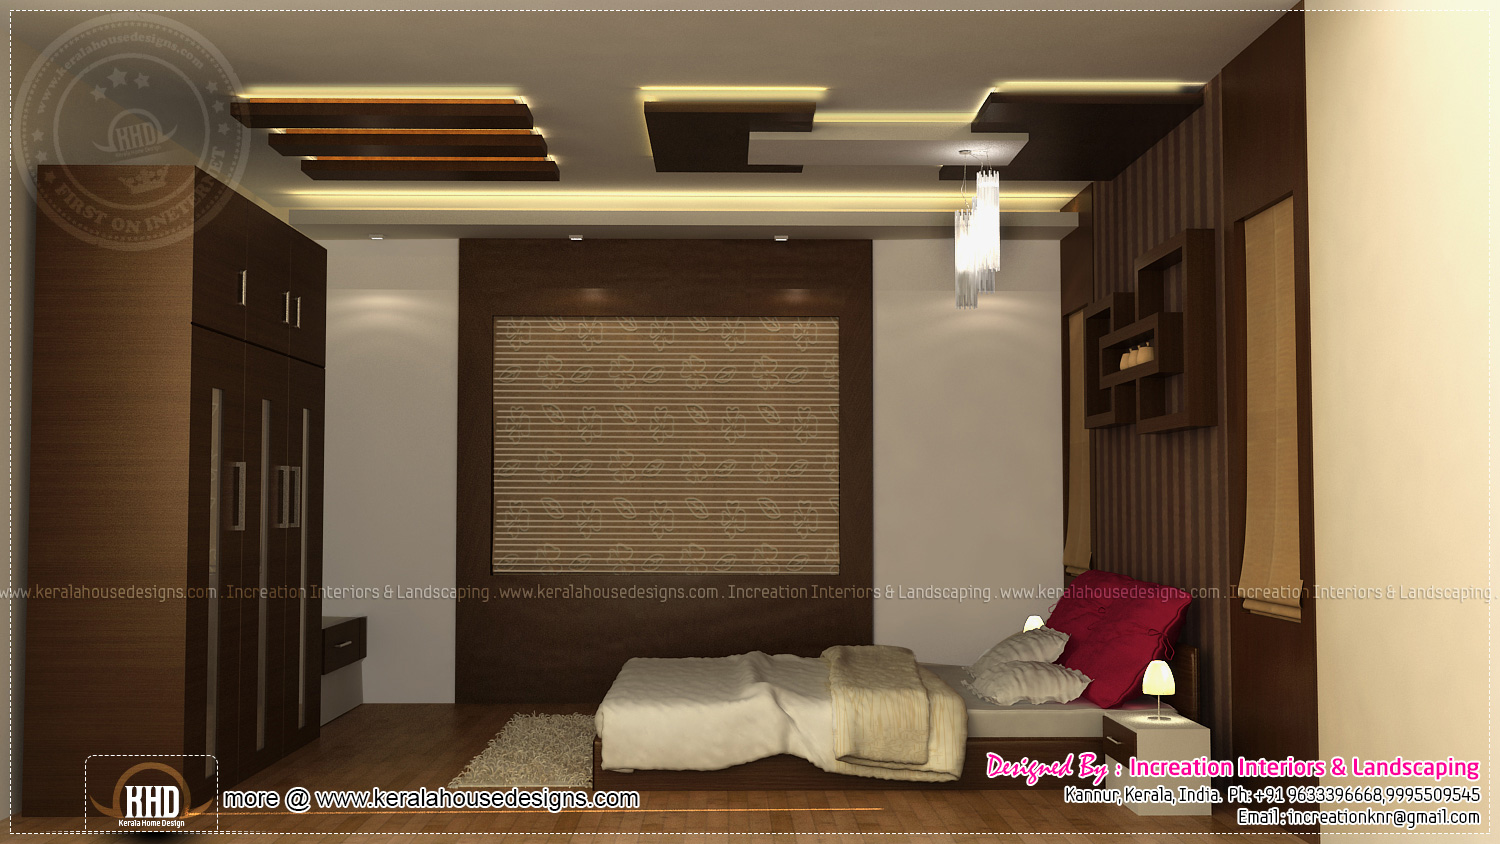 Interior Designs By Increation Kannur Kerala Kerala